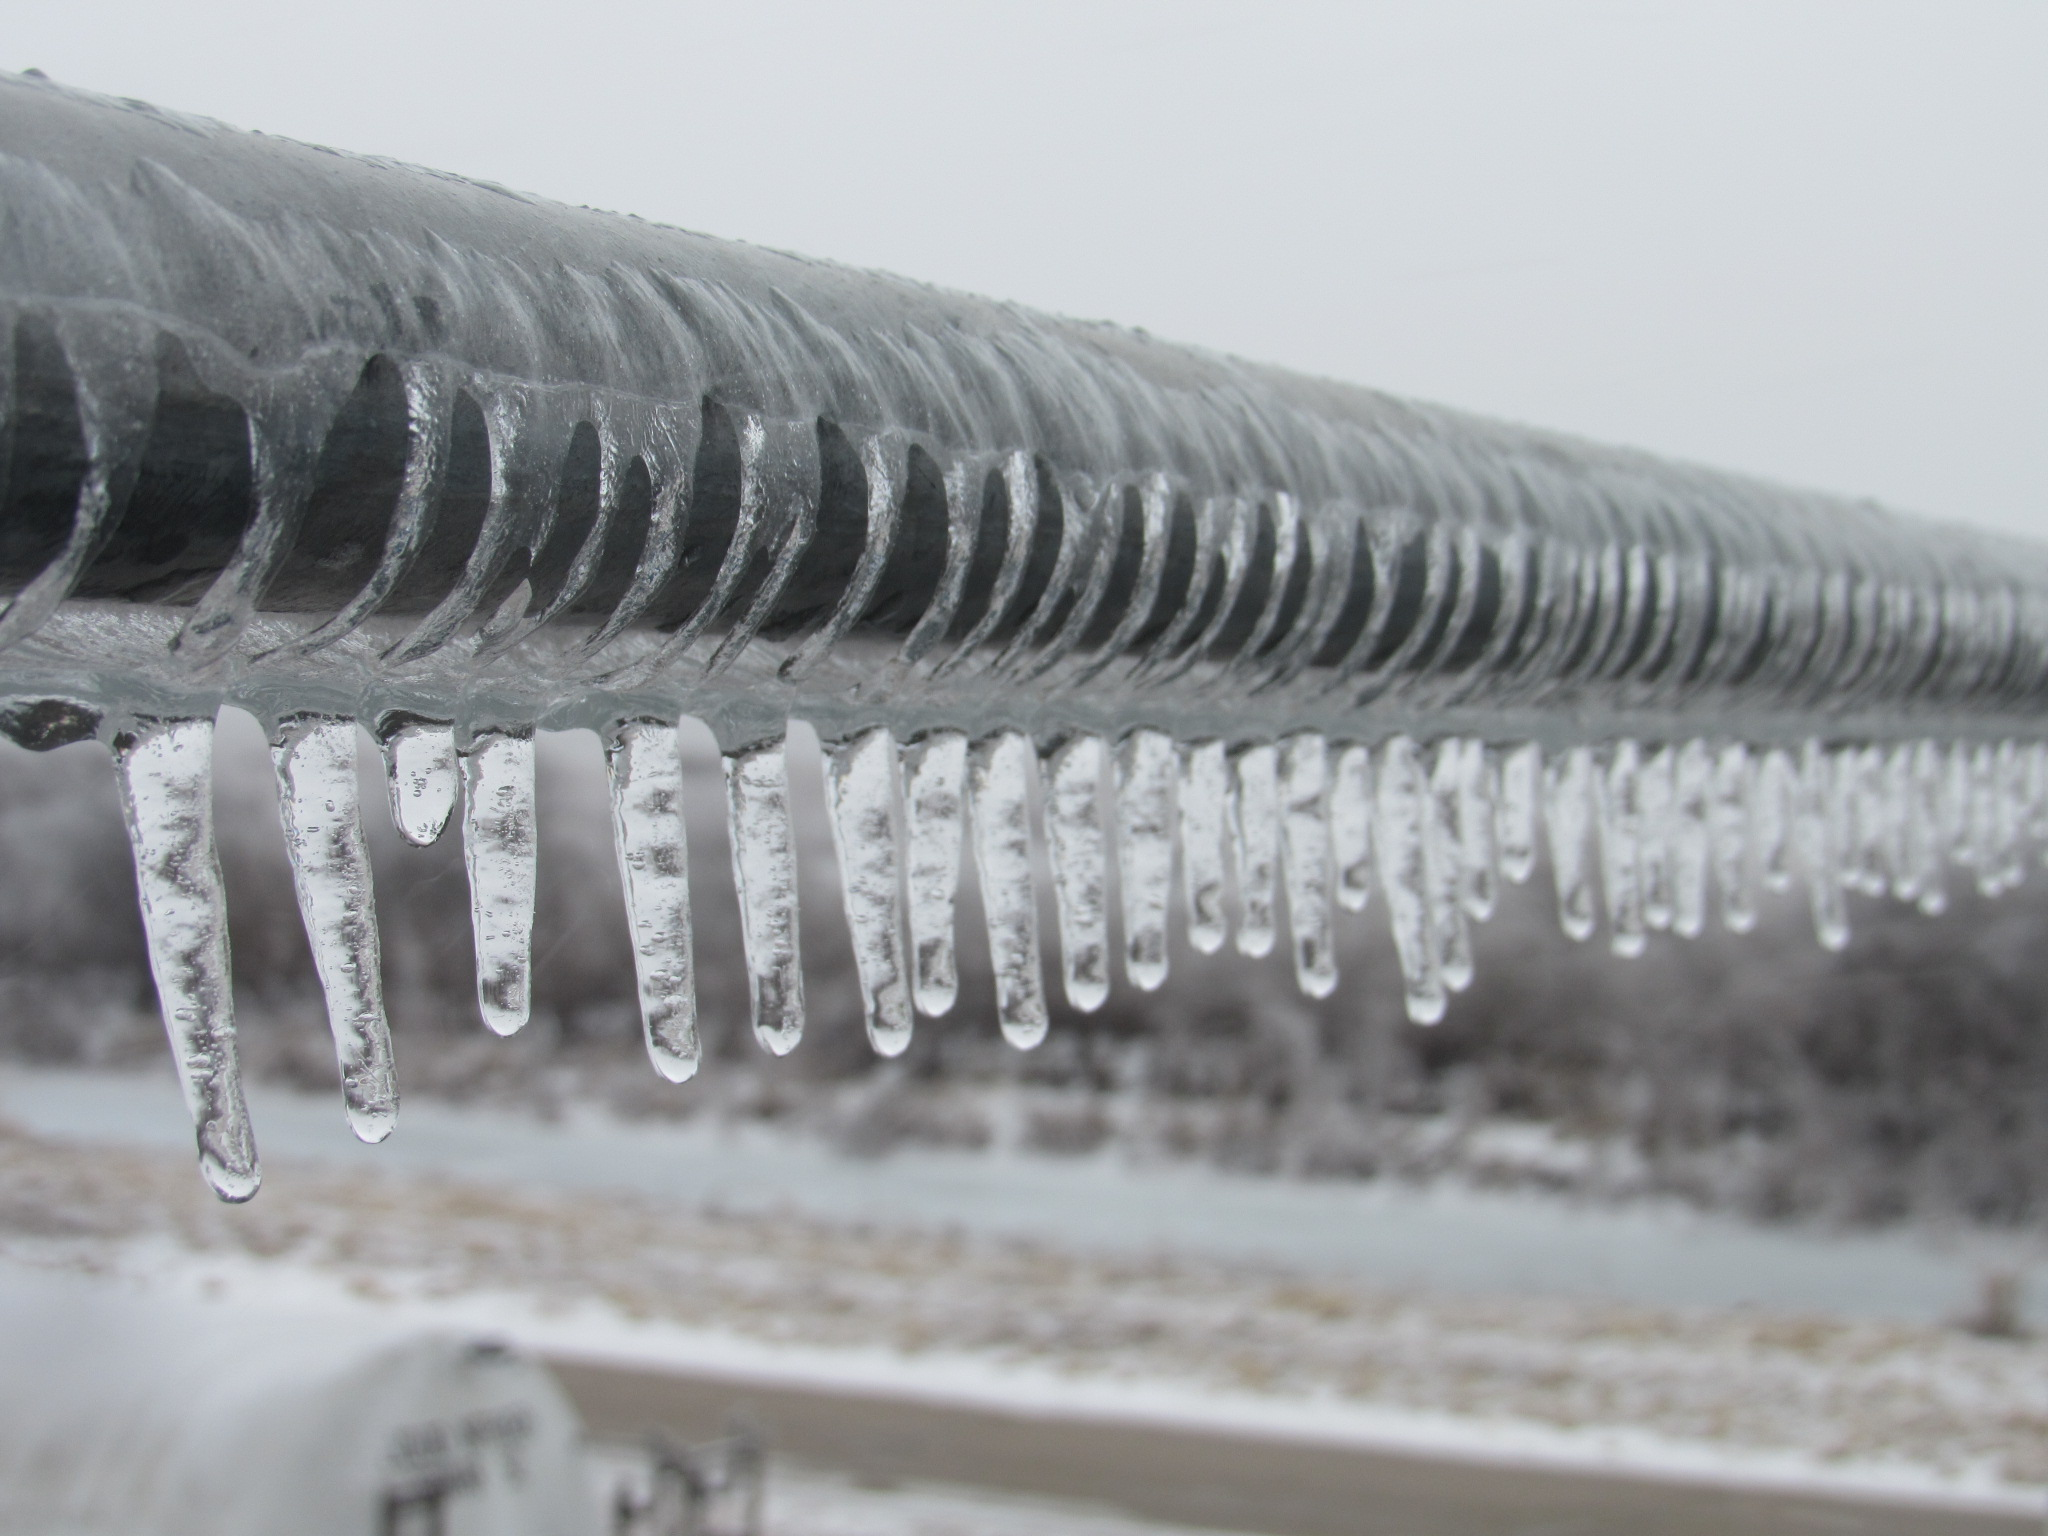 (1/3) Icicles form on a rail. winter, ice, everyday objects Photo: Luciano Elementi